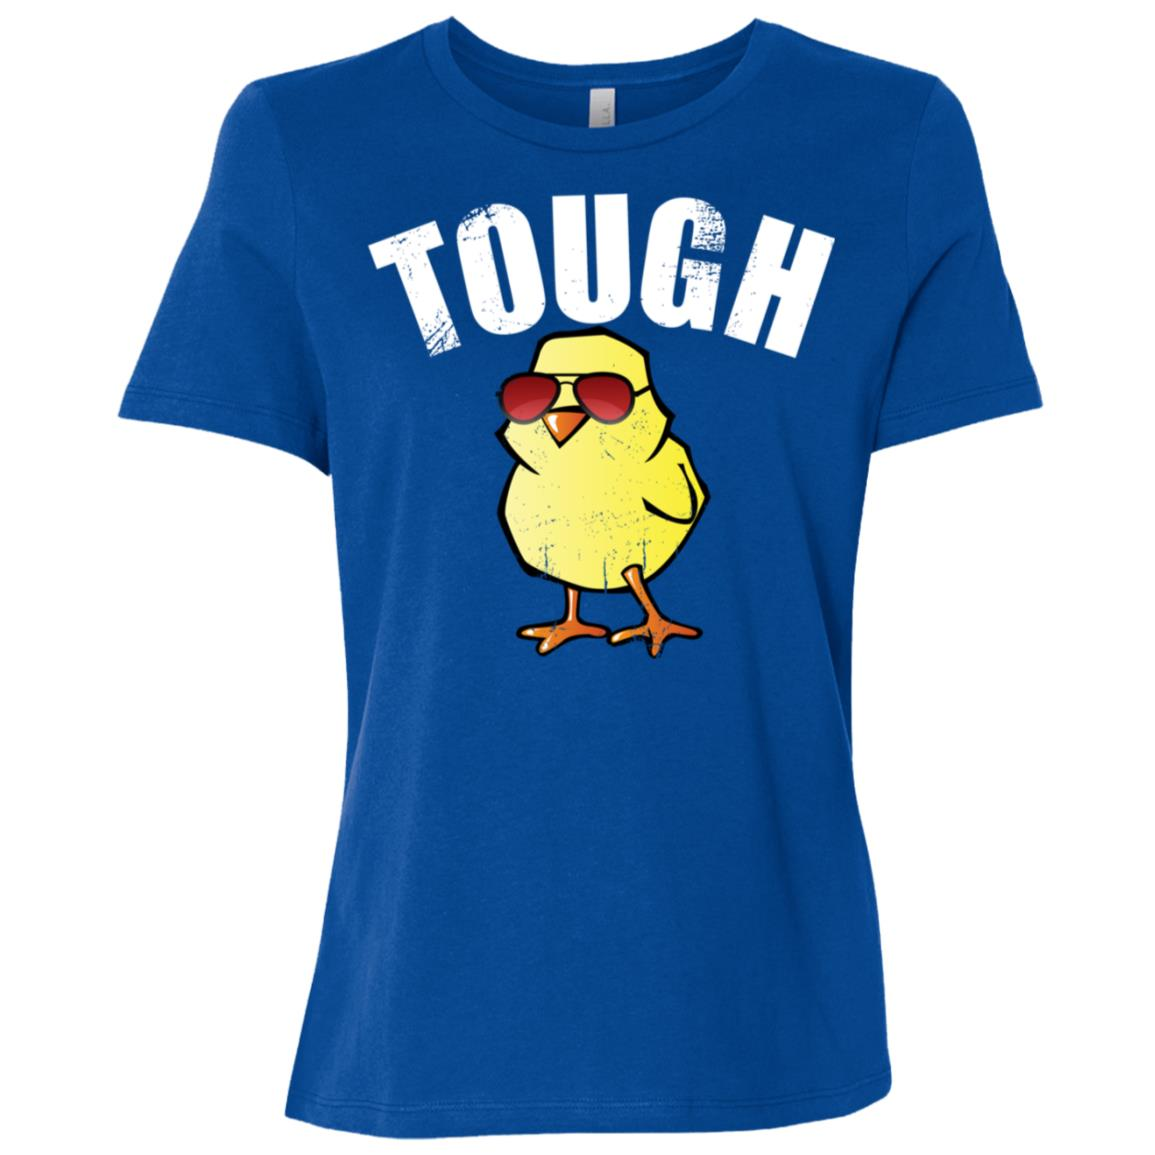 Tough Chick Funny Chick Cute Baby Chick Women Short Sleeve T-Shirt